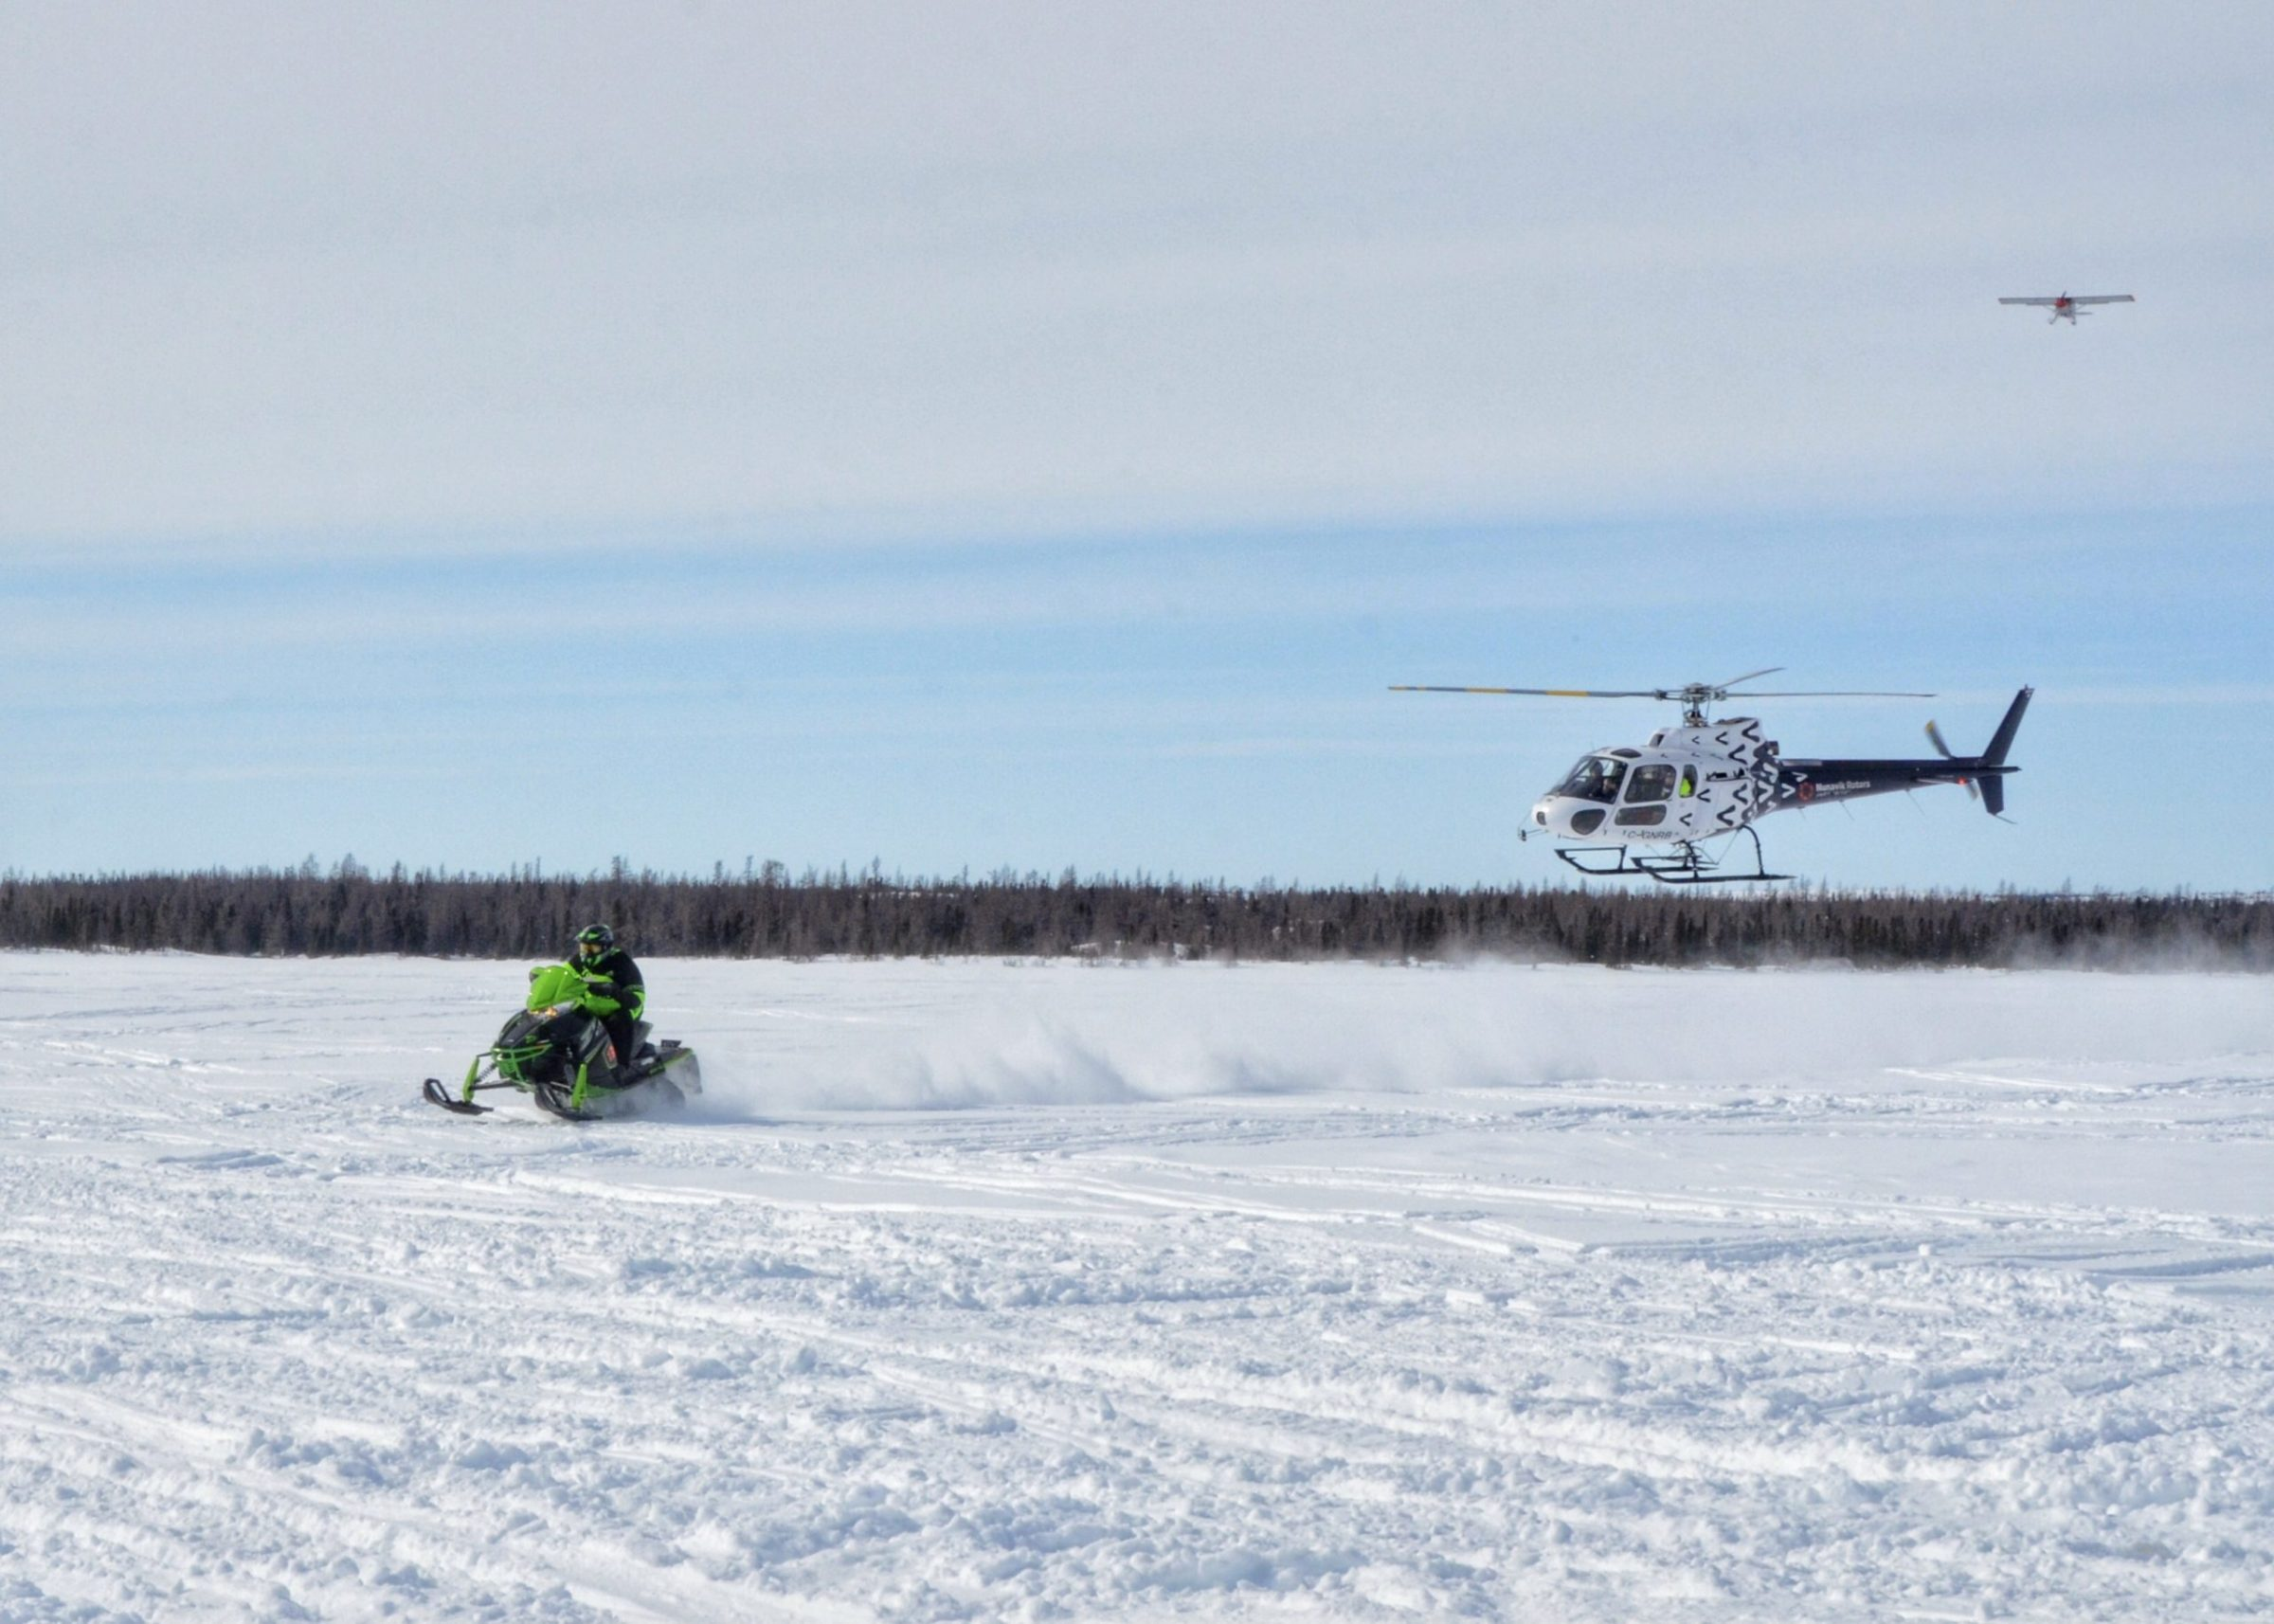 George Kauki is the winner of the men's division of Kuujjuaq's annual Easter Cross-Country Snowmobile Race held on Monday. He's seen here approaching the finish line at Tasialuk (Stewart Lake), after racing to Tasiujaq and back, covering just over 250 km. He's followed by a Nunavik Rotors helicopter, which patrolled the trail for safety during the race, with a nurse onboard in case of emergencies. (Photo by Isabelle Dubois)